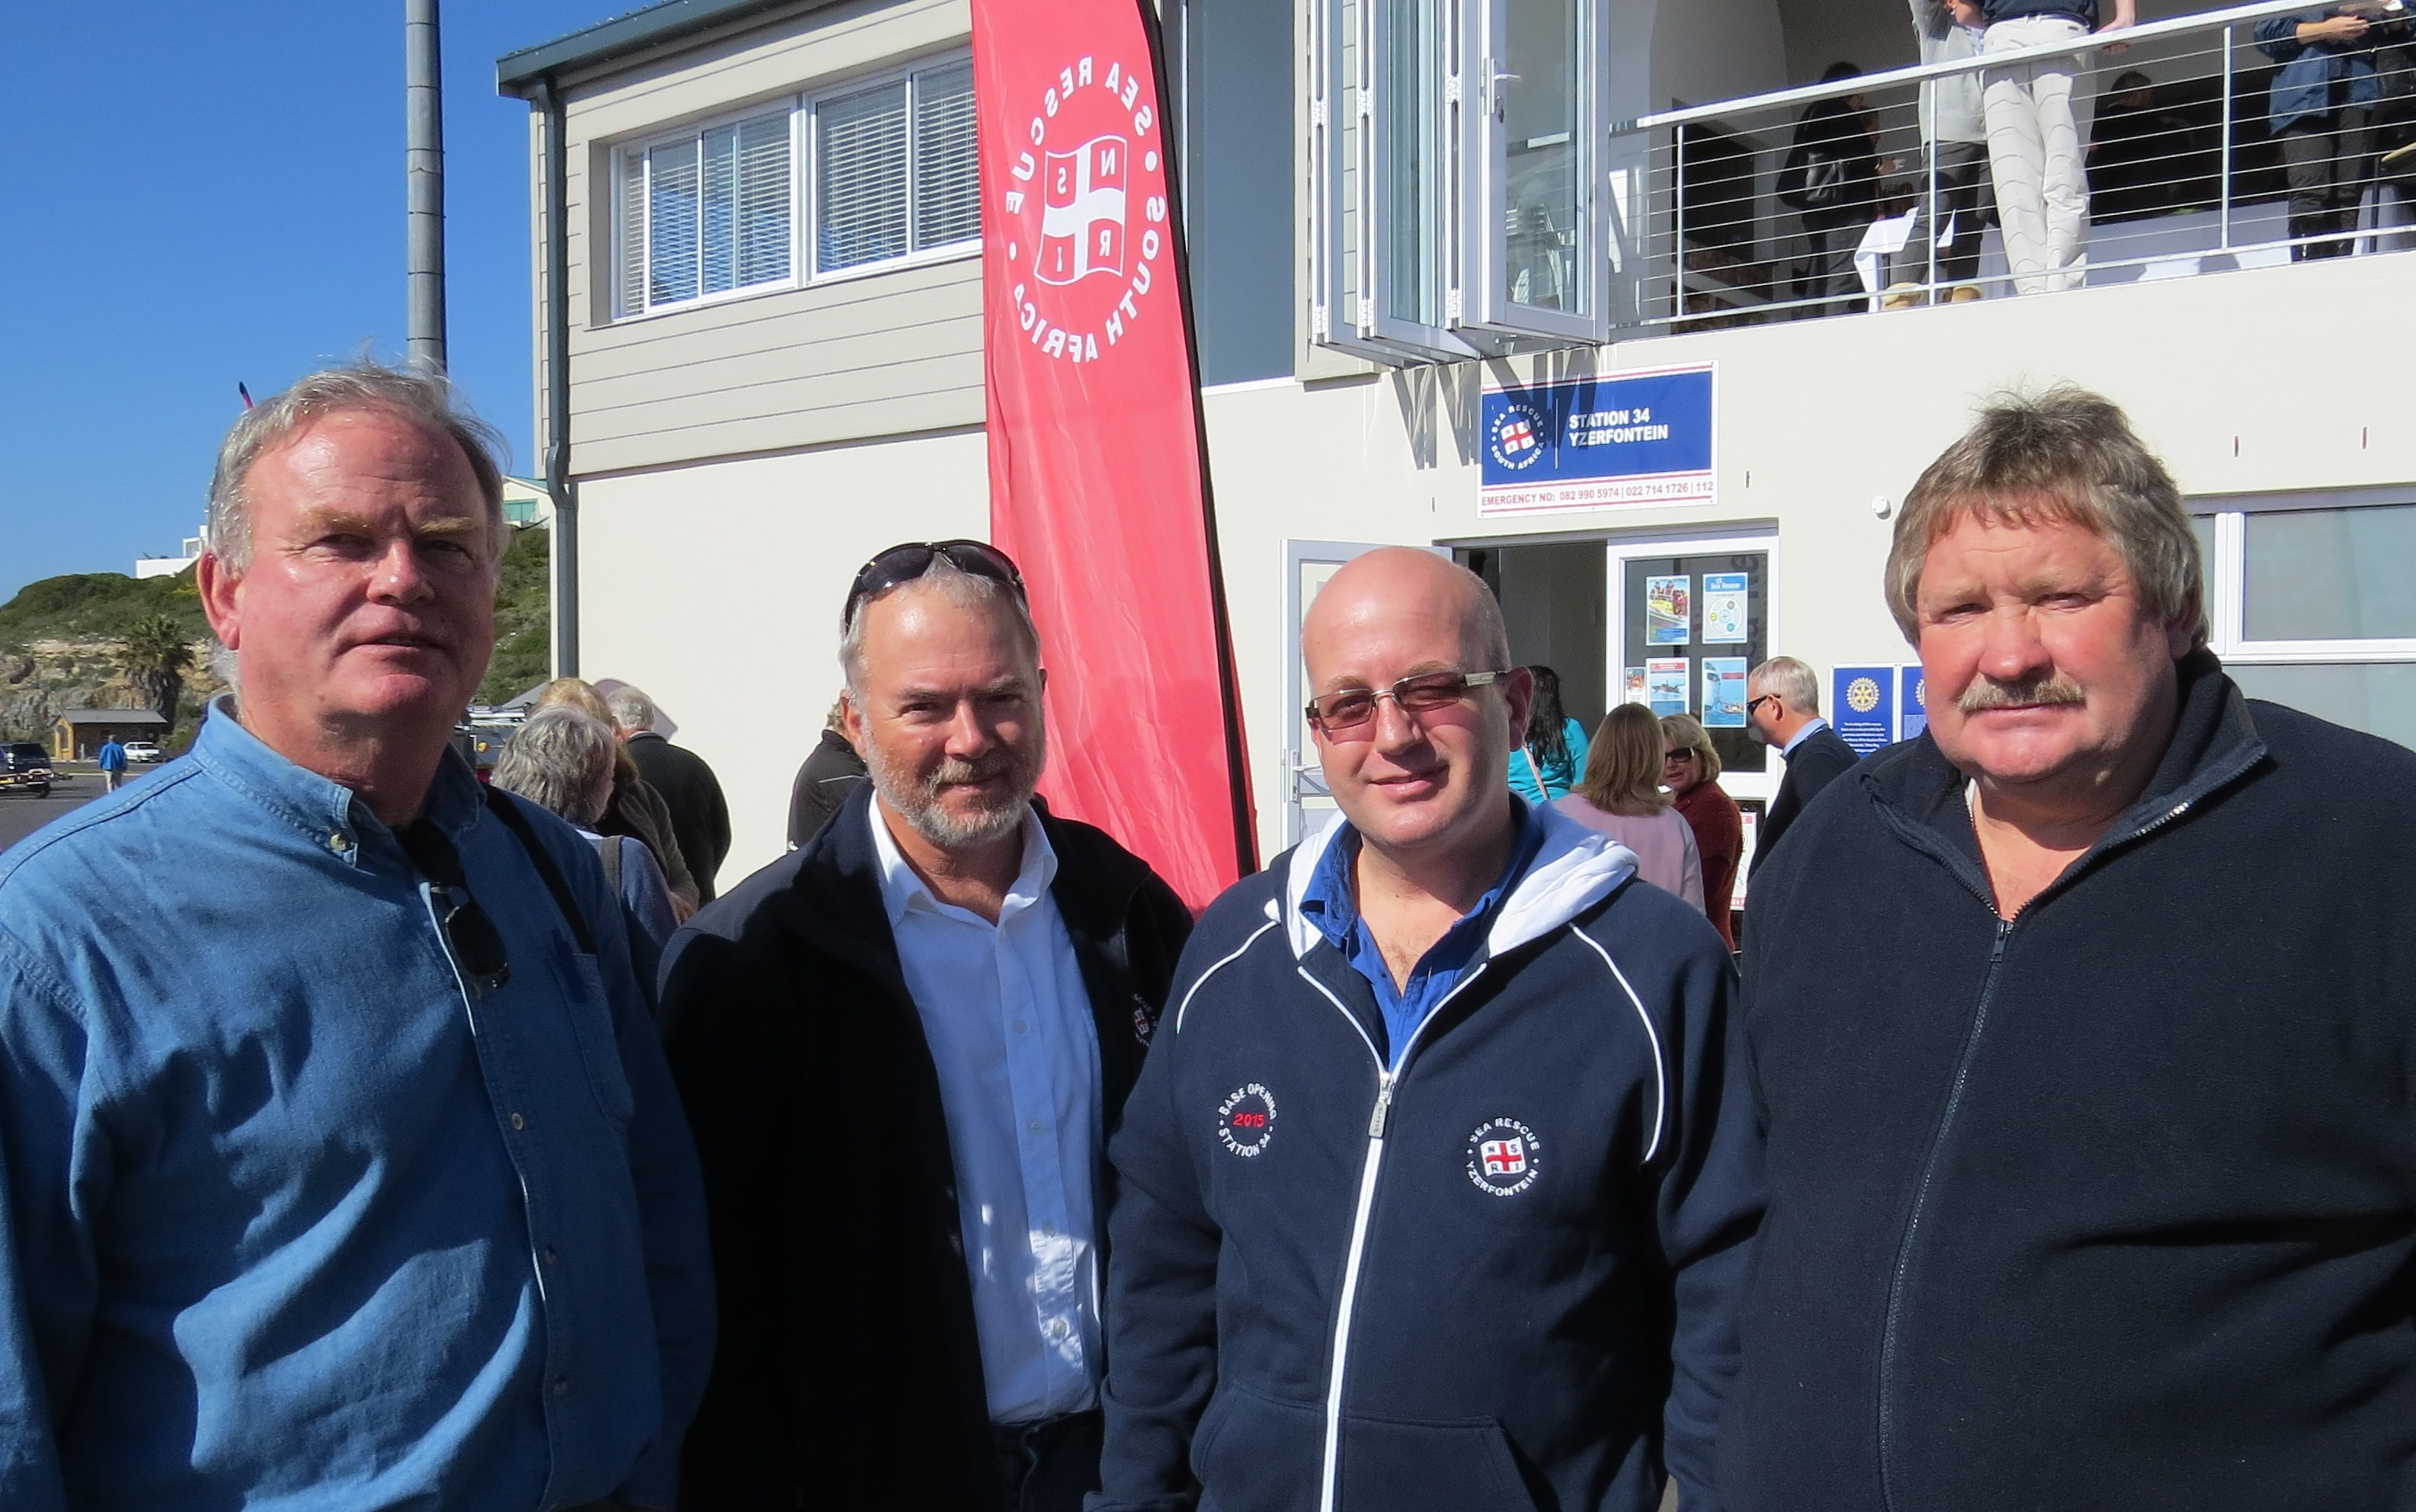 Doug Weirs (Rotary), Mark Hughes (NSRI Ops Director), Rudi Rogers (former Station Commander) with the builder Karl Kunert